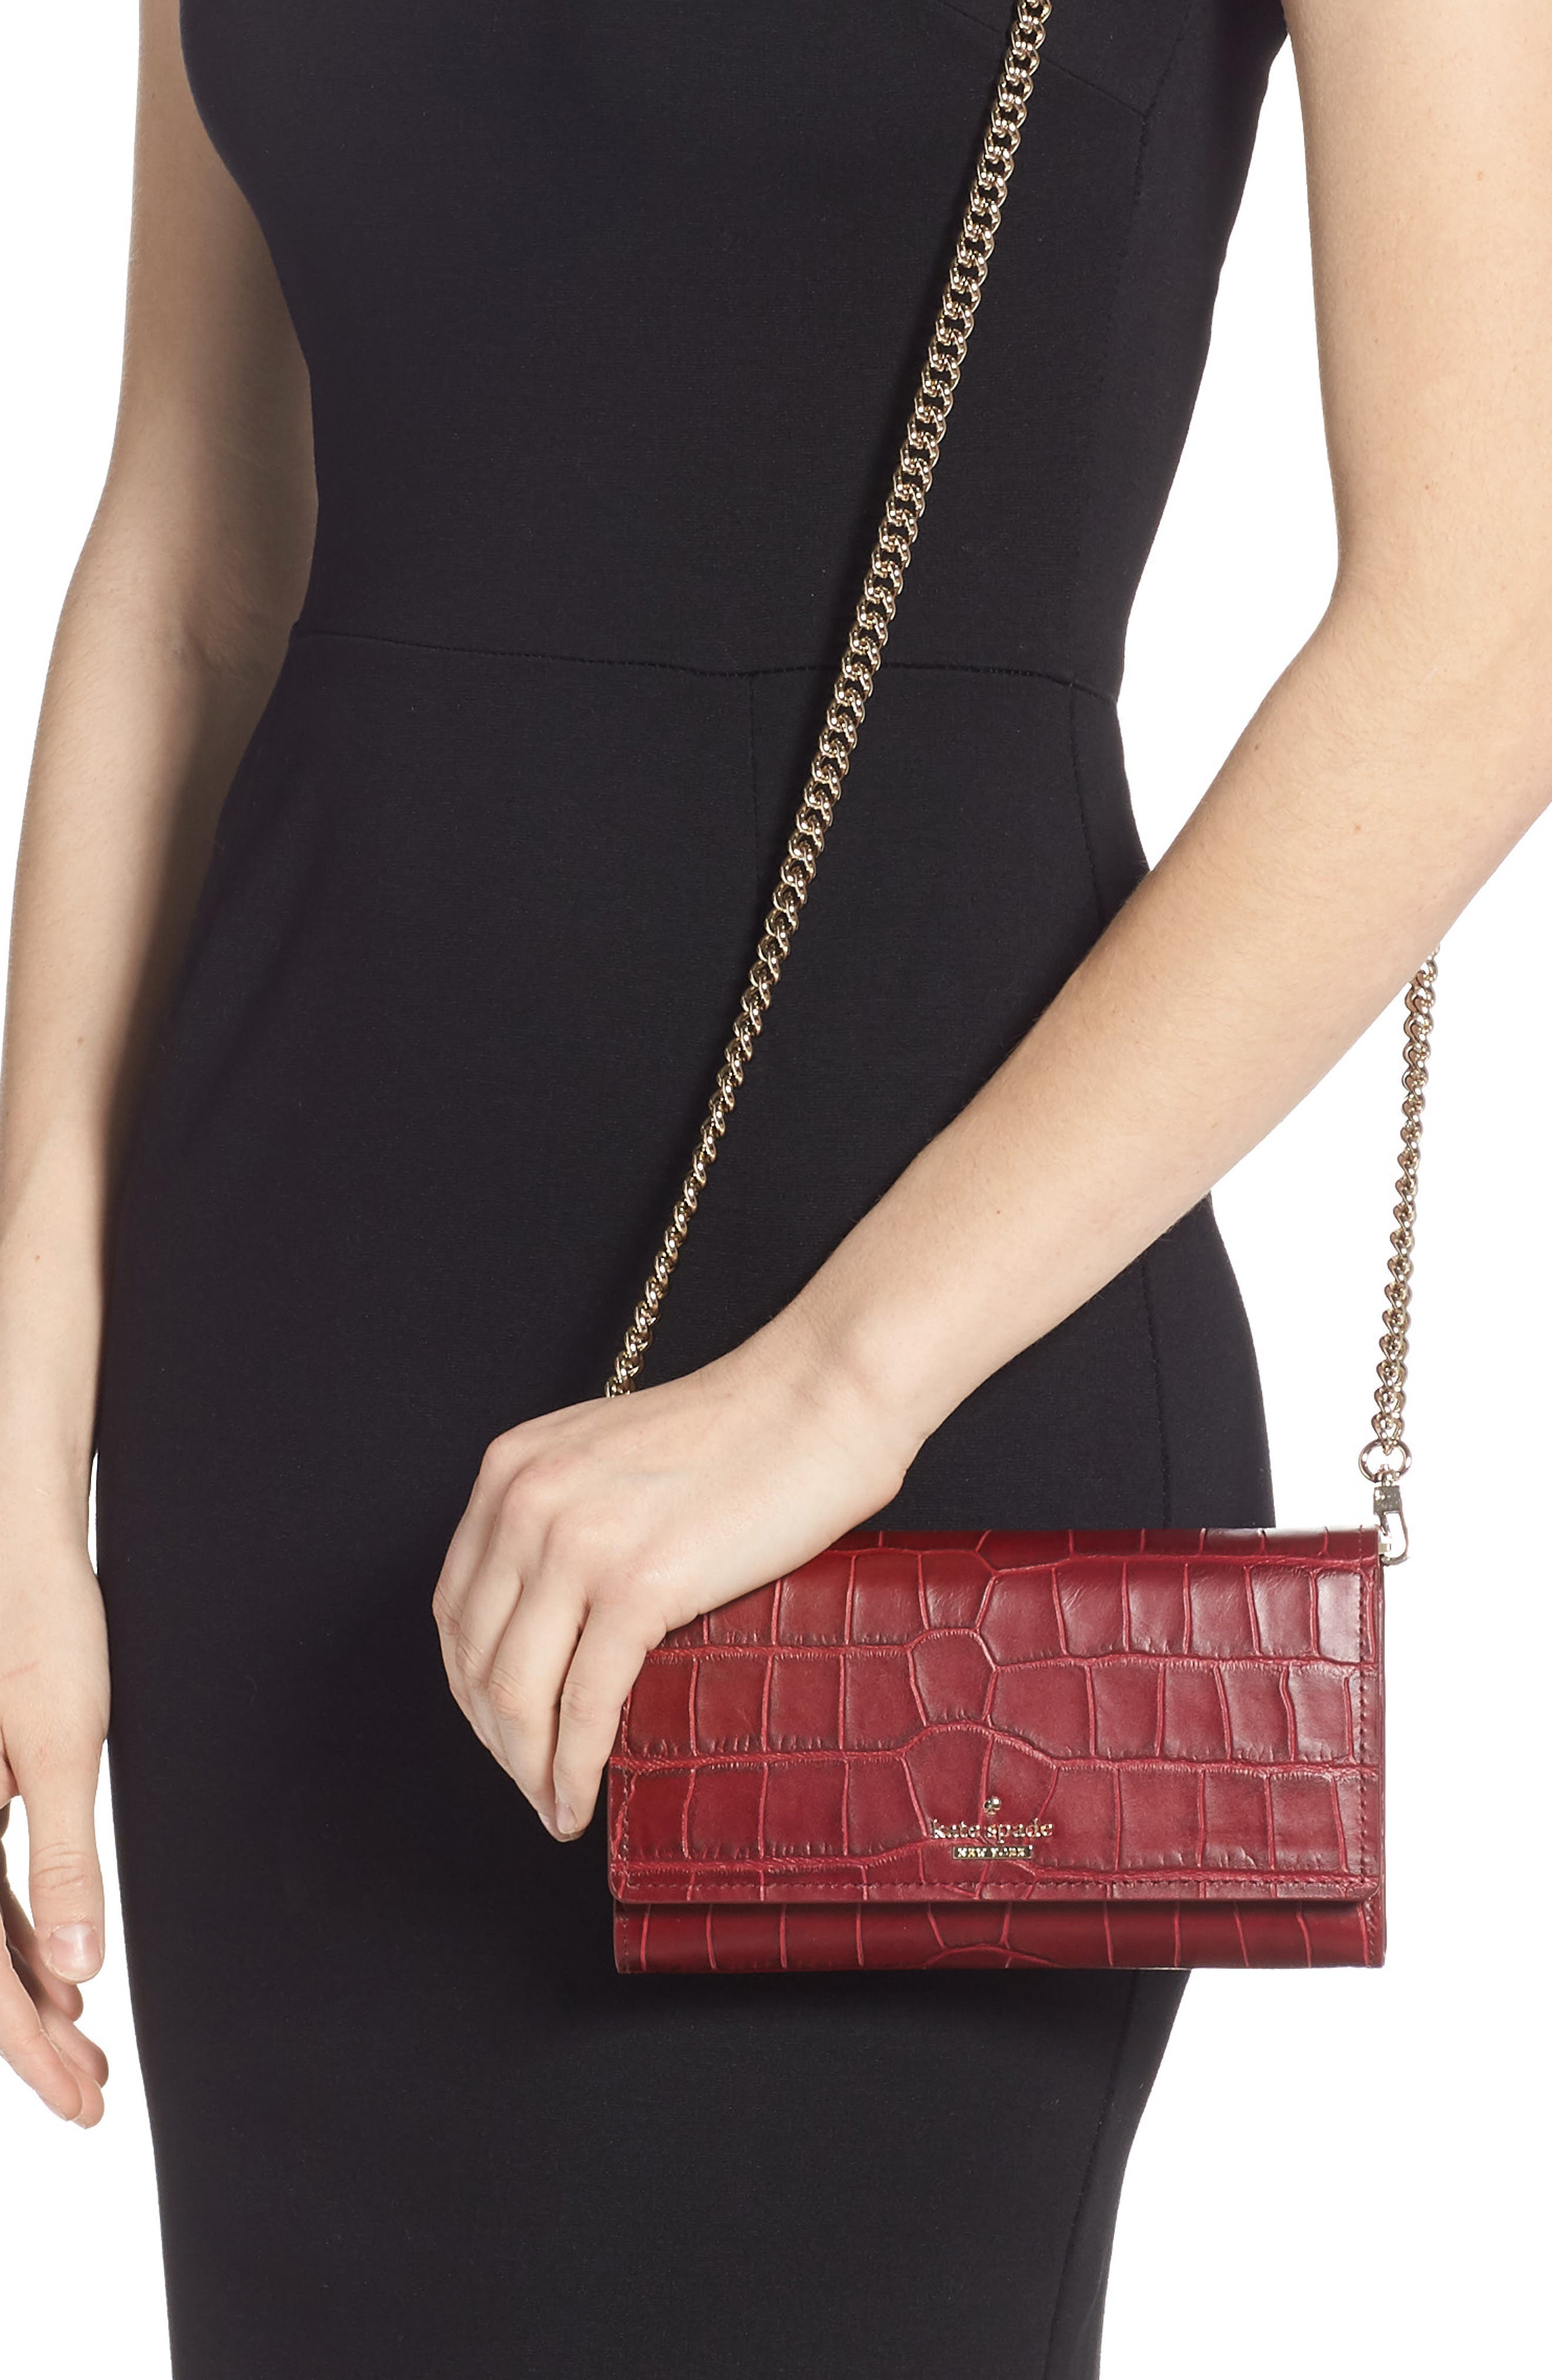 murray street luxe franny leather wallet on a chain,                             Alternate thumbnail 2, color,                             CHILI PEPPER